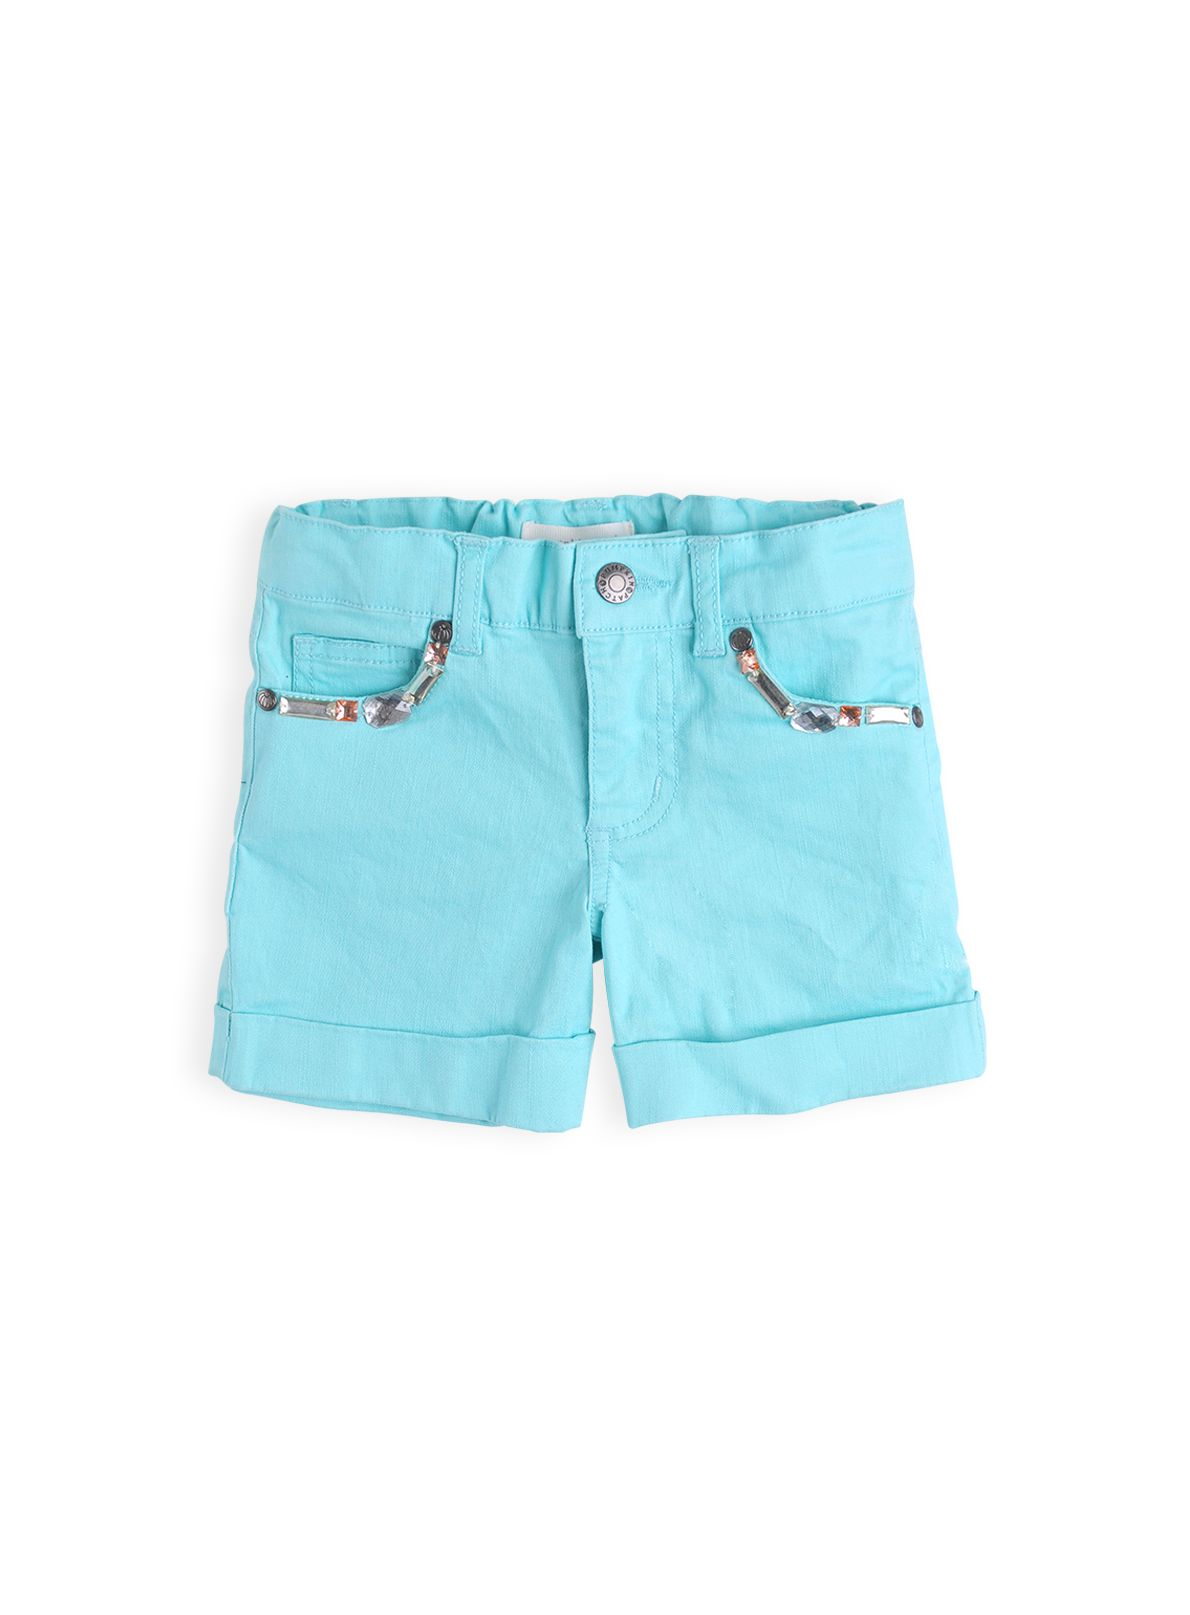 Girls jewel trim short